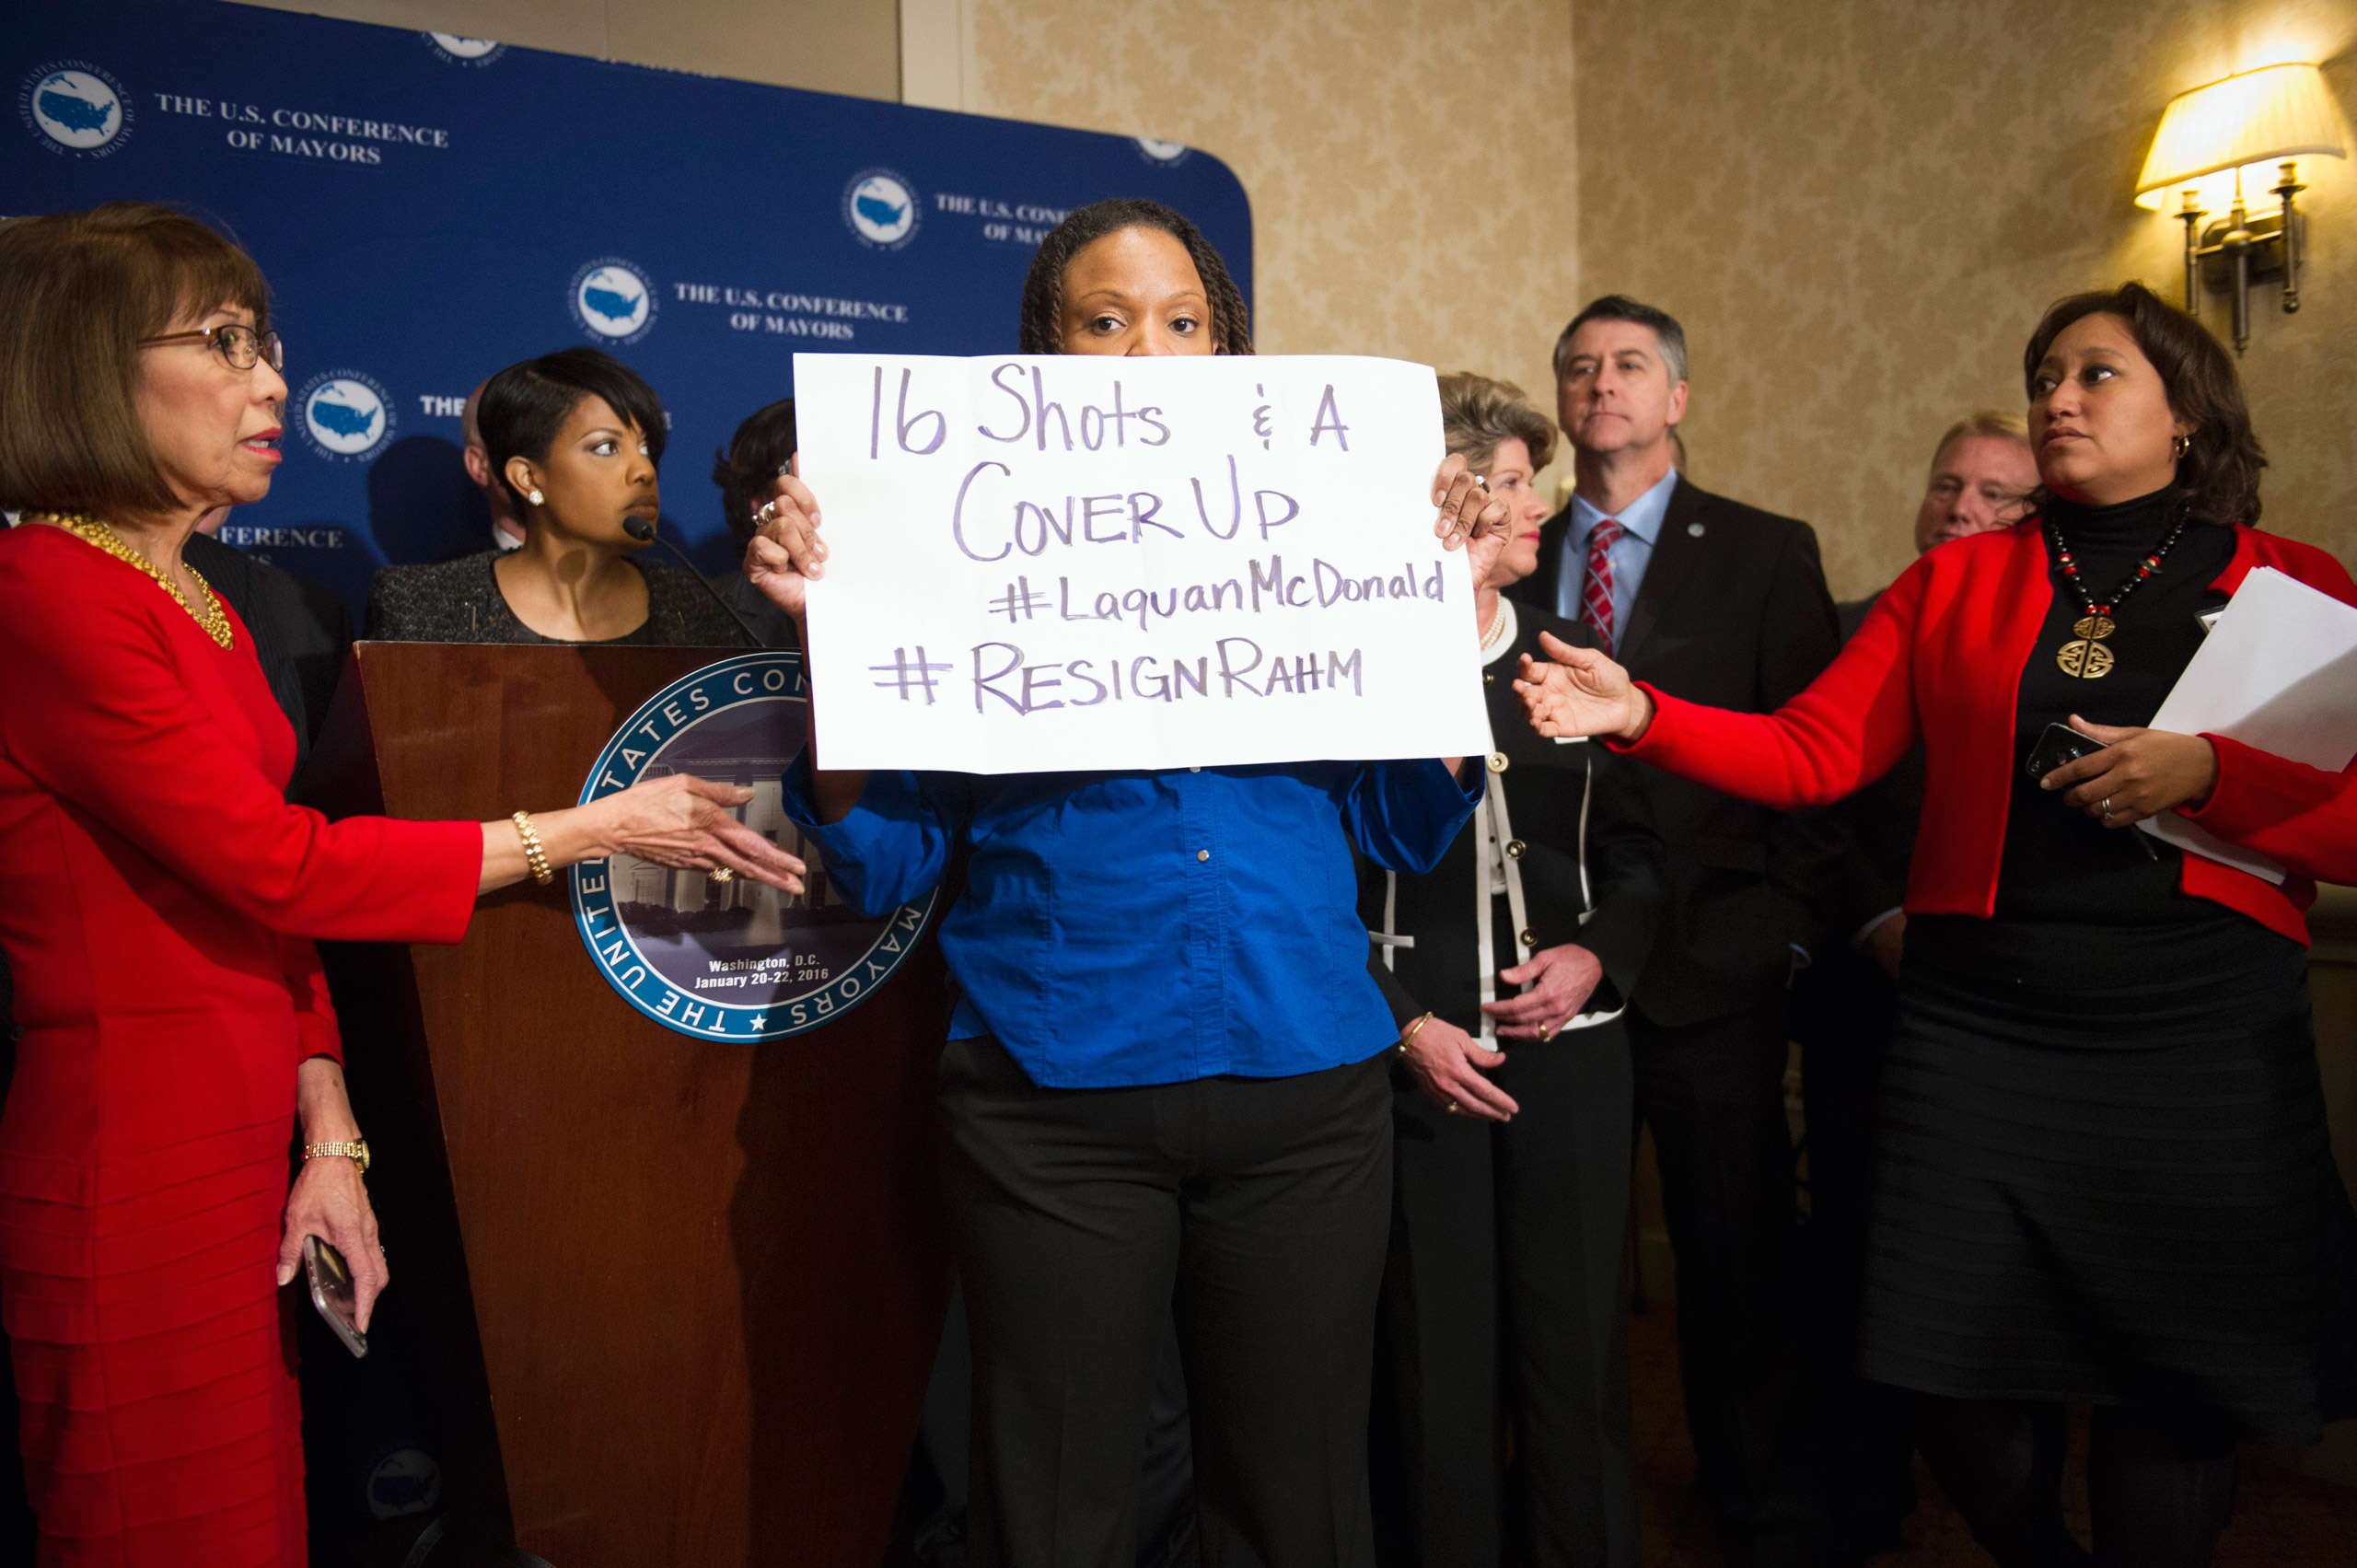 Burnsville, Minn., Mayor Elizabeth Kautz, left, tries to move Black Lives Matters demonstrator April Goggans as she interrupts a news conference during the U..S. Conference of Mayors Winter Meeting in Washington on Jan. 20, 2016.